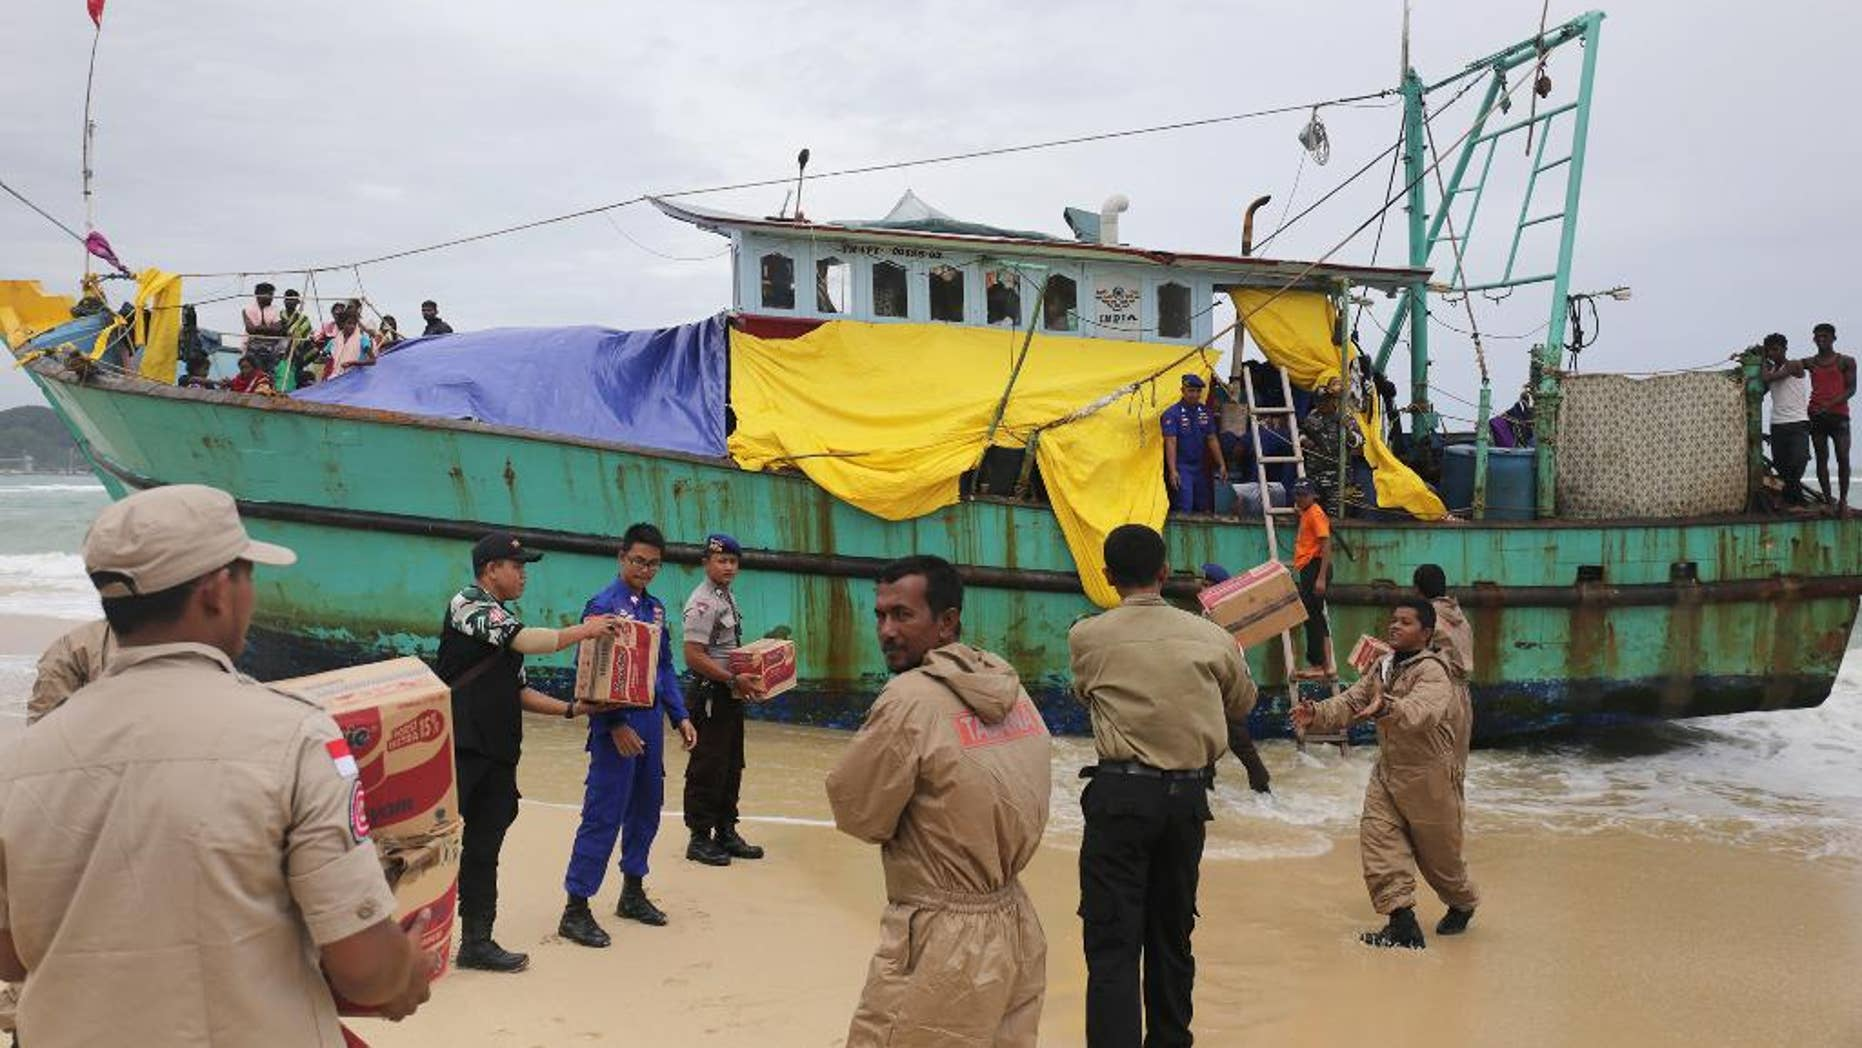 FILE - In this June 17, 2016 file photo, Indonesian officials load food supplies onto a boat carrying Tamil migrants which have been stranded on the beach in Lhoknga, Aceh province, Indonesia. Indonesia has allowed a group of Tamil migrants from Sri Lanka to come ashore in Aceh province after confining them to their stranded boat for a week.  The migrants are now being sheltered in tents after being allowed off their boat Saturday, June 18, 2016.   (AP Photo/Heri Juanda, File)